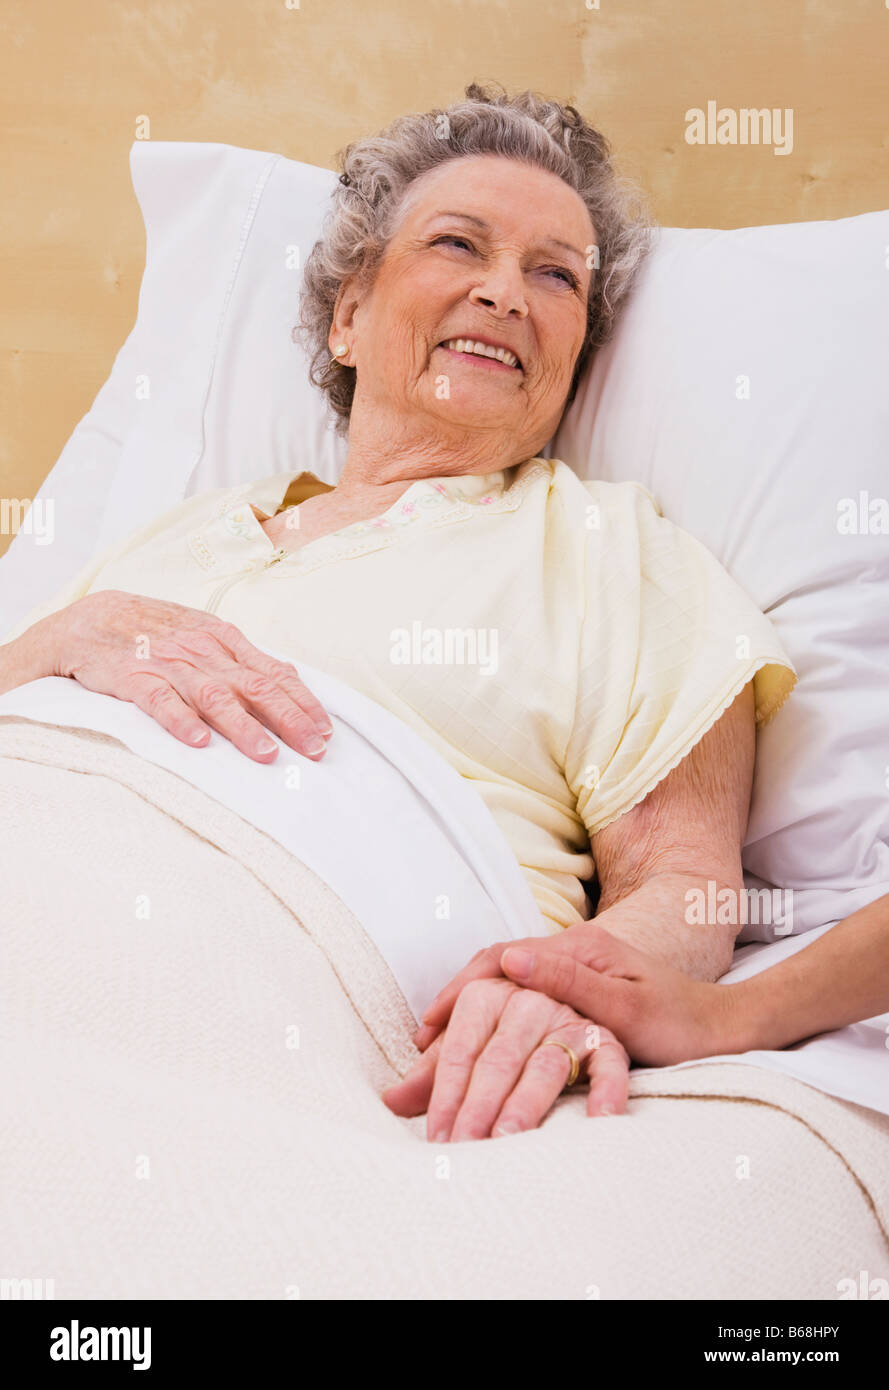 Woman holding senior woman's hand on bed - Stock Image